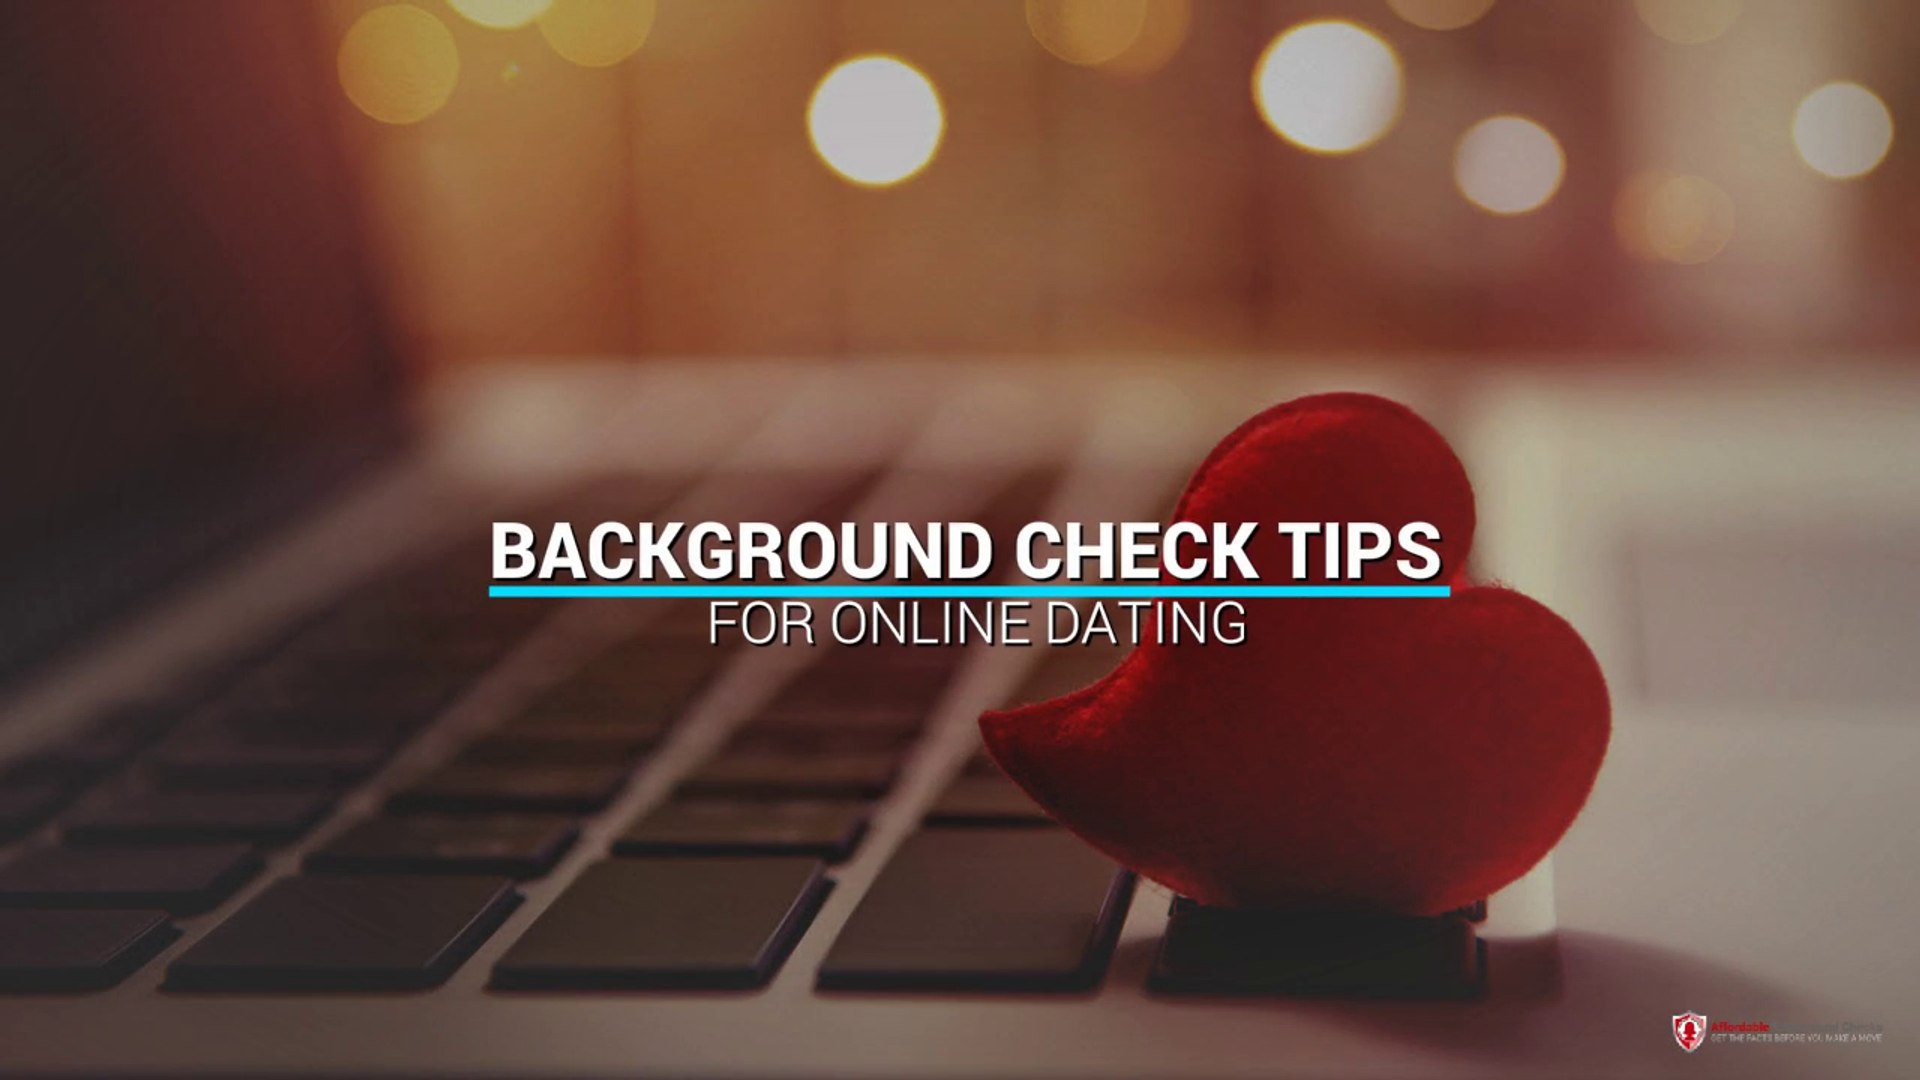 Dating online background check